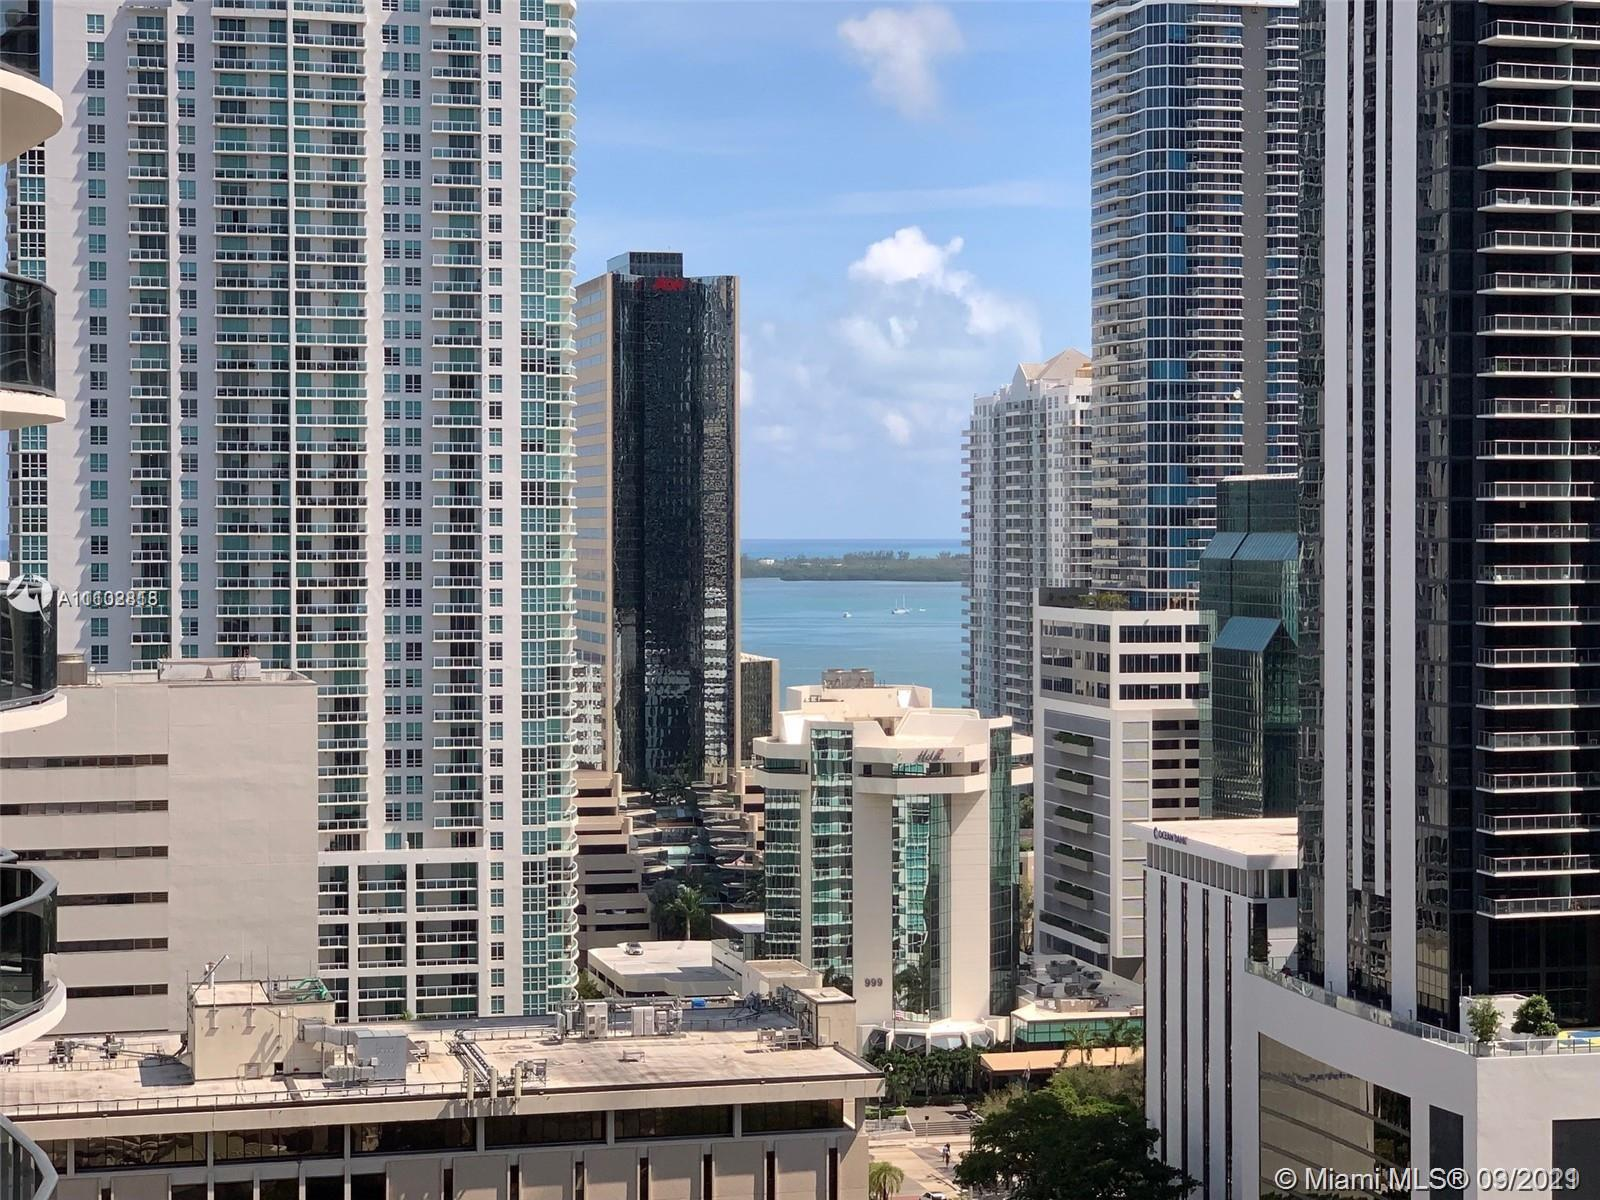 BRICKELL HEIGHTS WEST COND Condo,For Rent,BRICKELL HEIGHTS WEST COND Brickell,realty,broker,condos near me